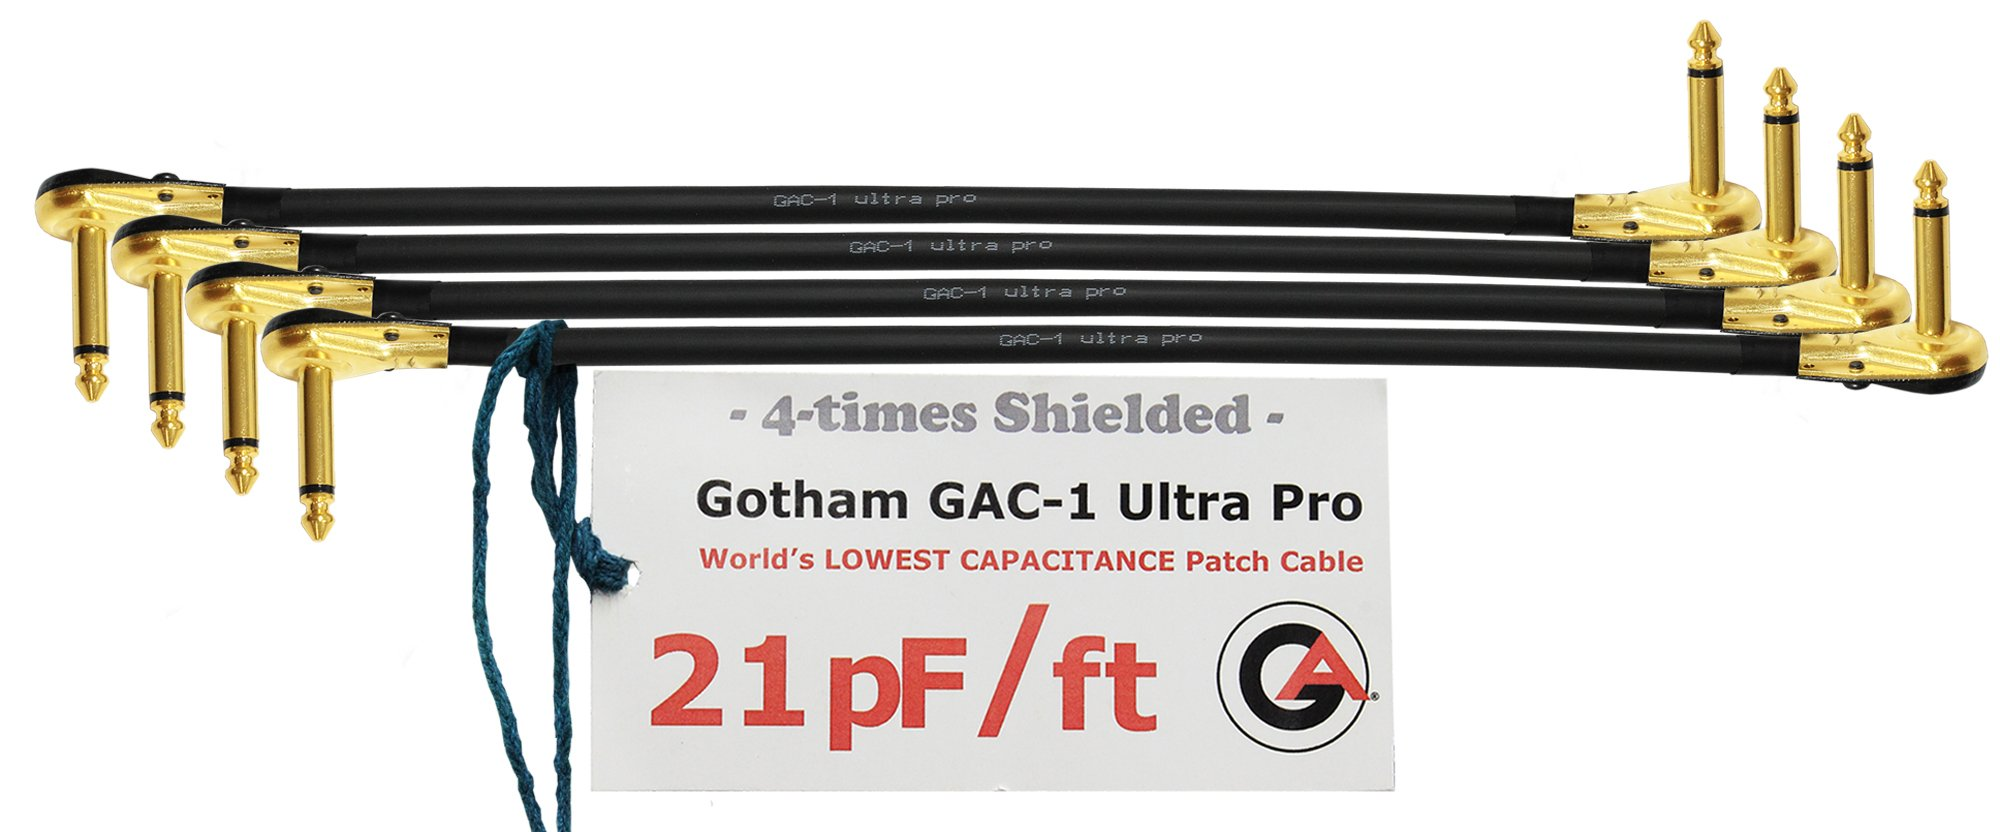 4 Units - 2 Foot - Gotham GAC-1 Ultra Pro - Low-Cap (21pF/ft) Guitar Bass Effects Instrument, S-Shaped Patch Cable & Gold (6.35mm) Low-Profile R/A Pancake Plugs - CUSTOM MADE By WORLDS BEST CABLES